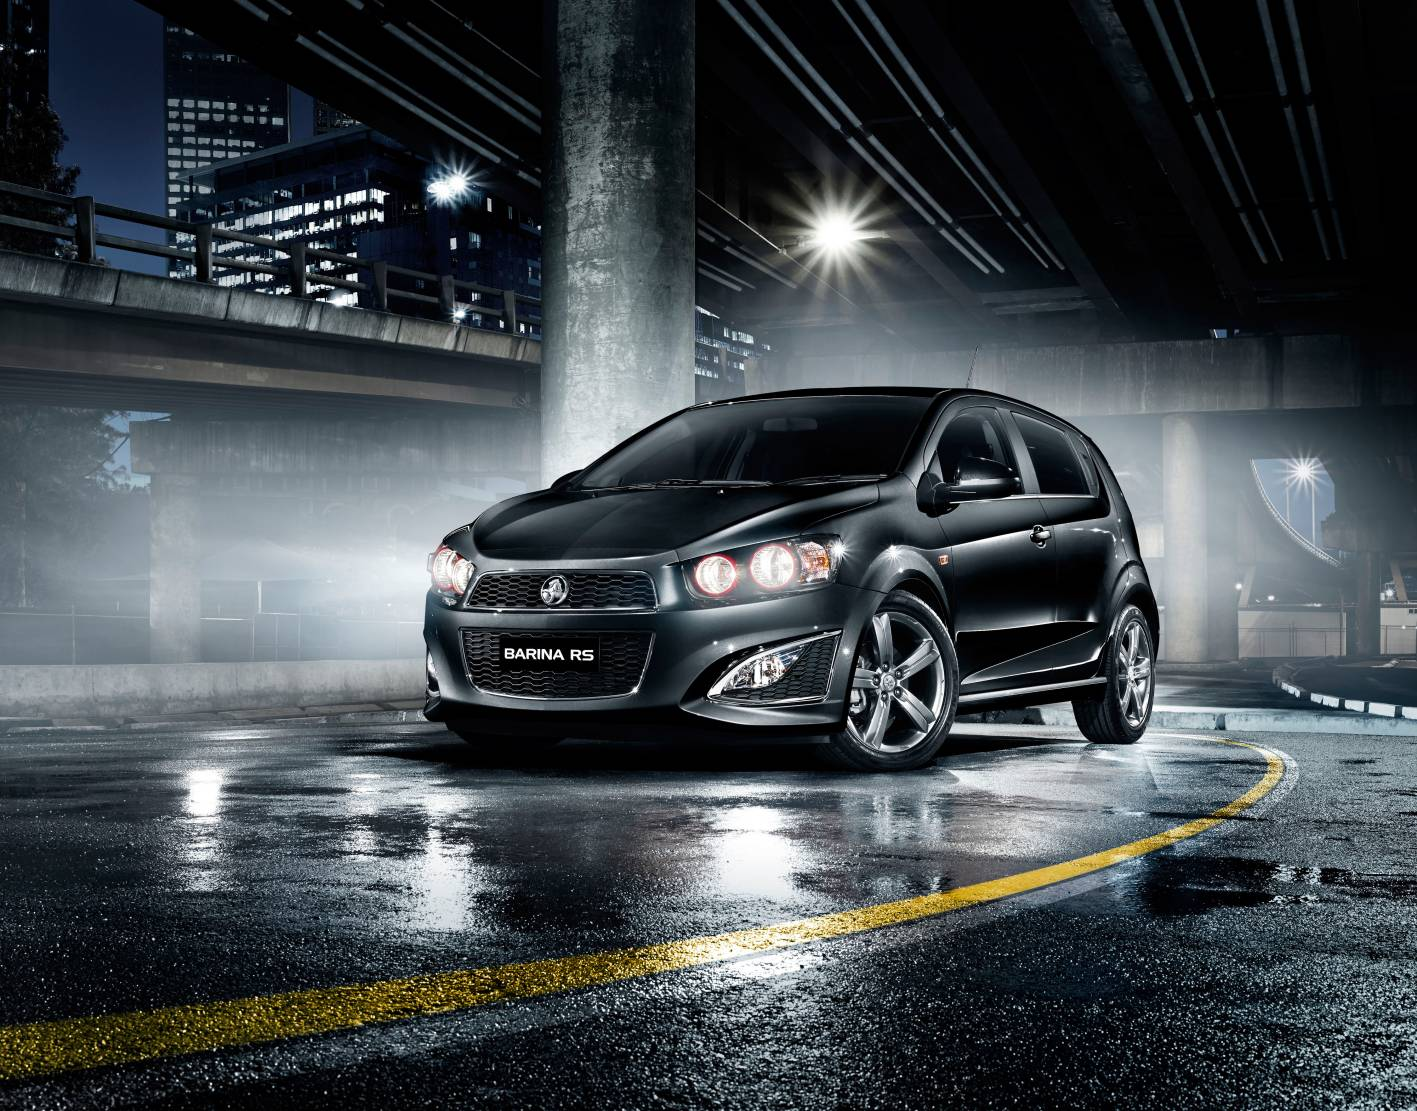 Rover Com Reviews >> Review - 2013 Holden Barina RS First Drive